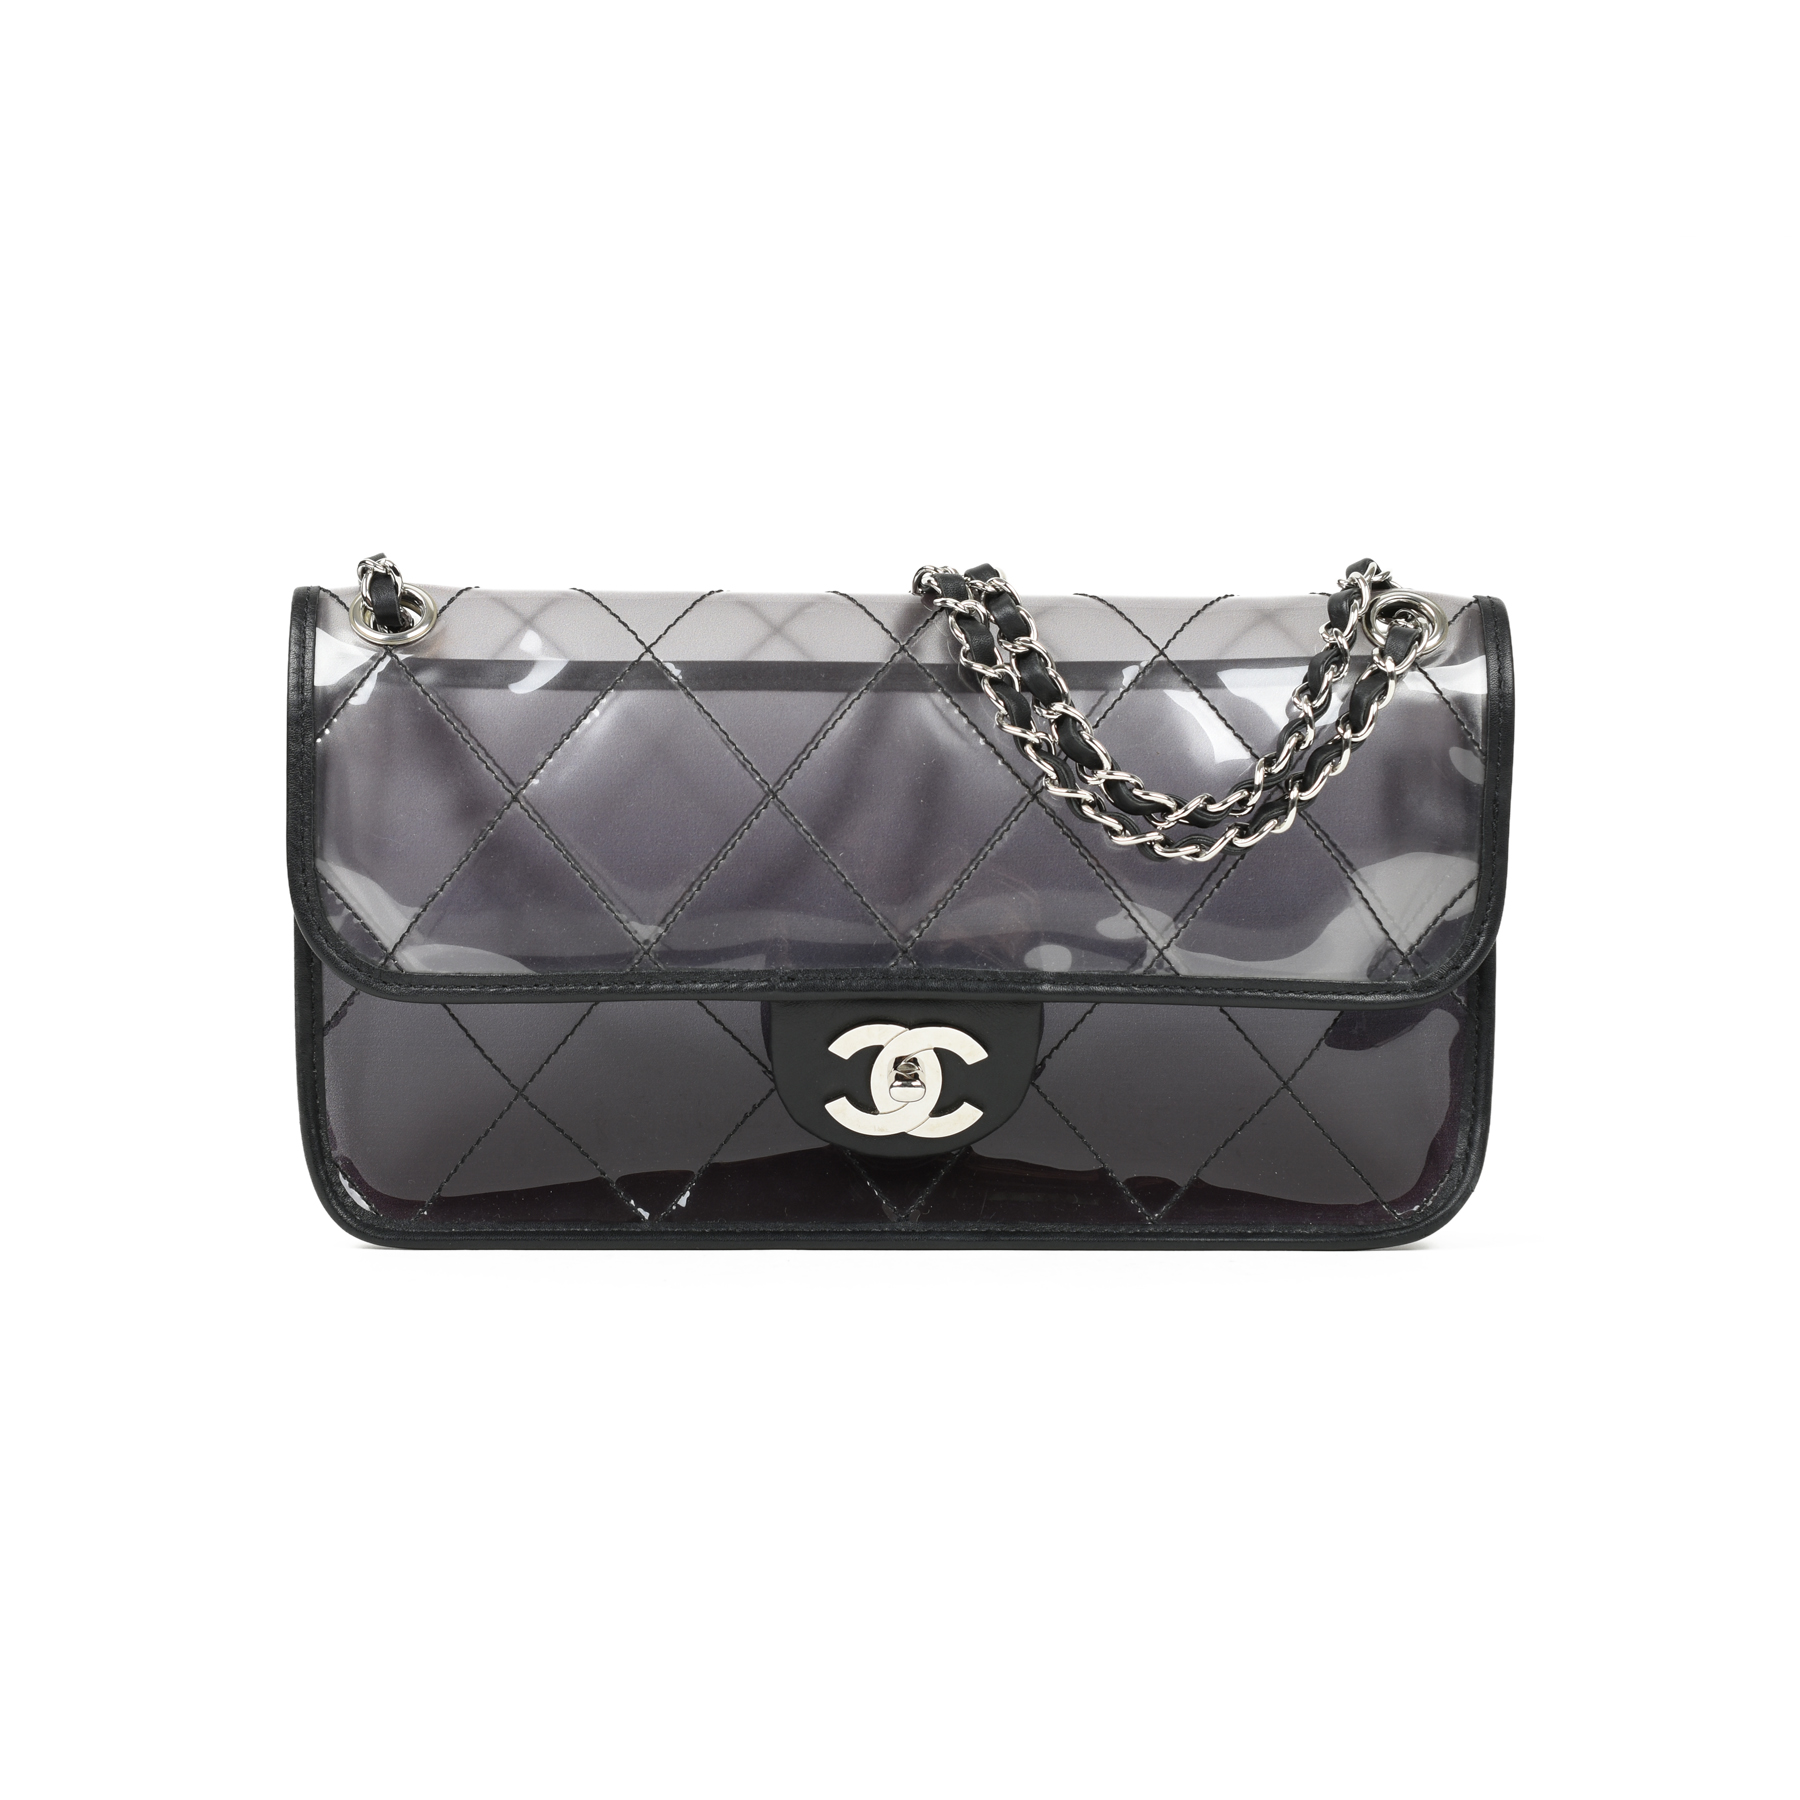 bfb86c7a98d3 Authentic Second Hand Chanel PVC Naked Flap Bag (PSS-051-00328 ...